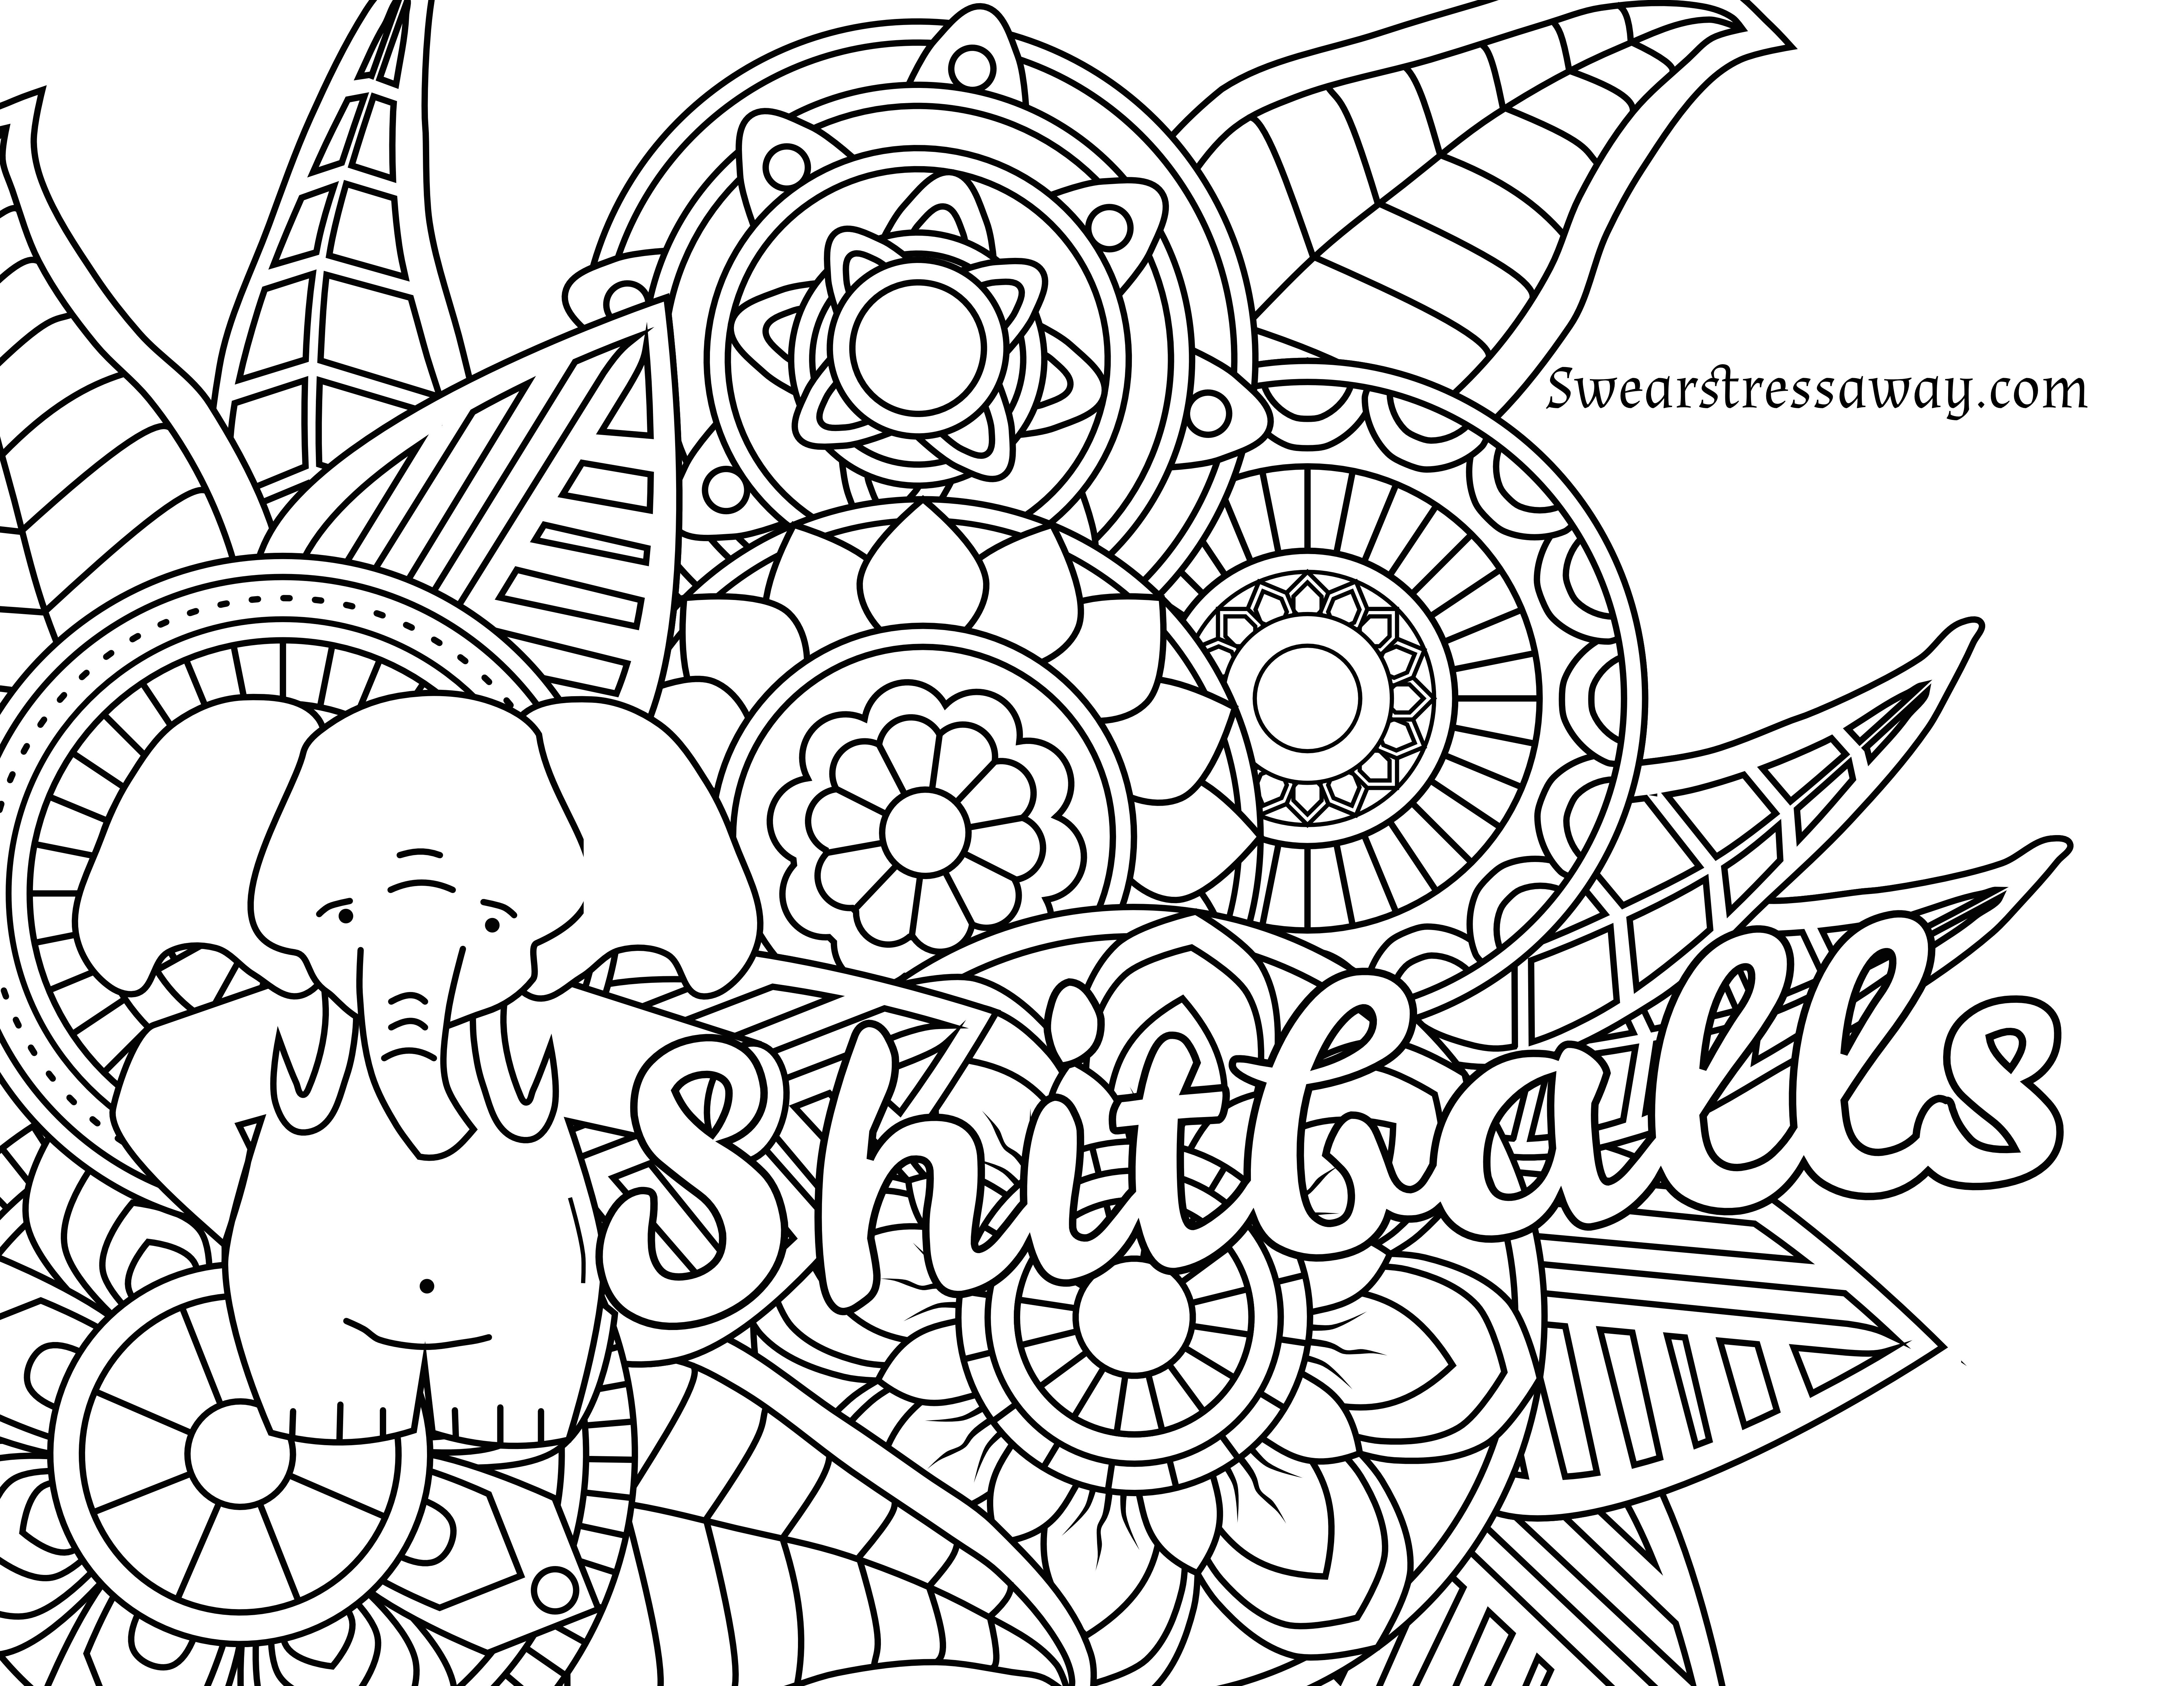 Coloring Ideas : Astonishing Free Printable Coloring Book For Kids - Free Printable Coloring Book Pages For Adults